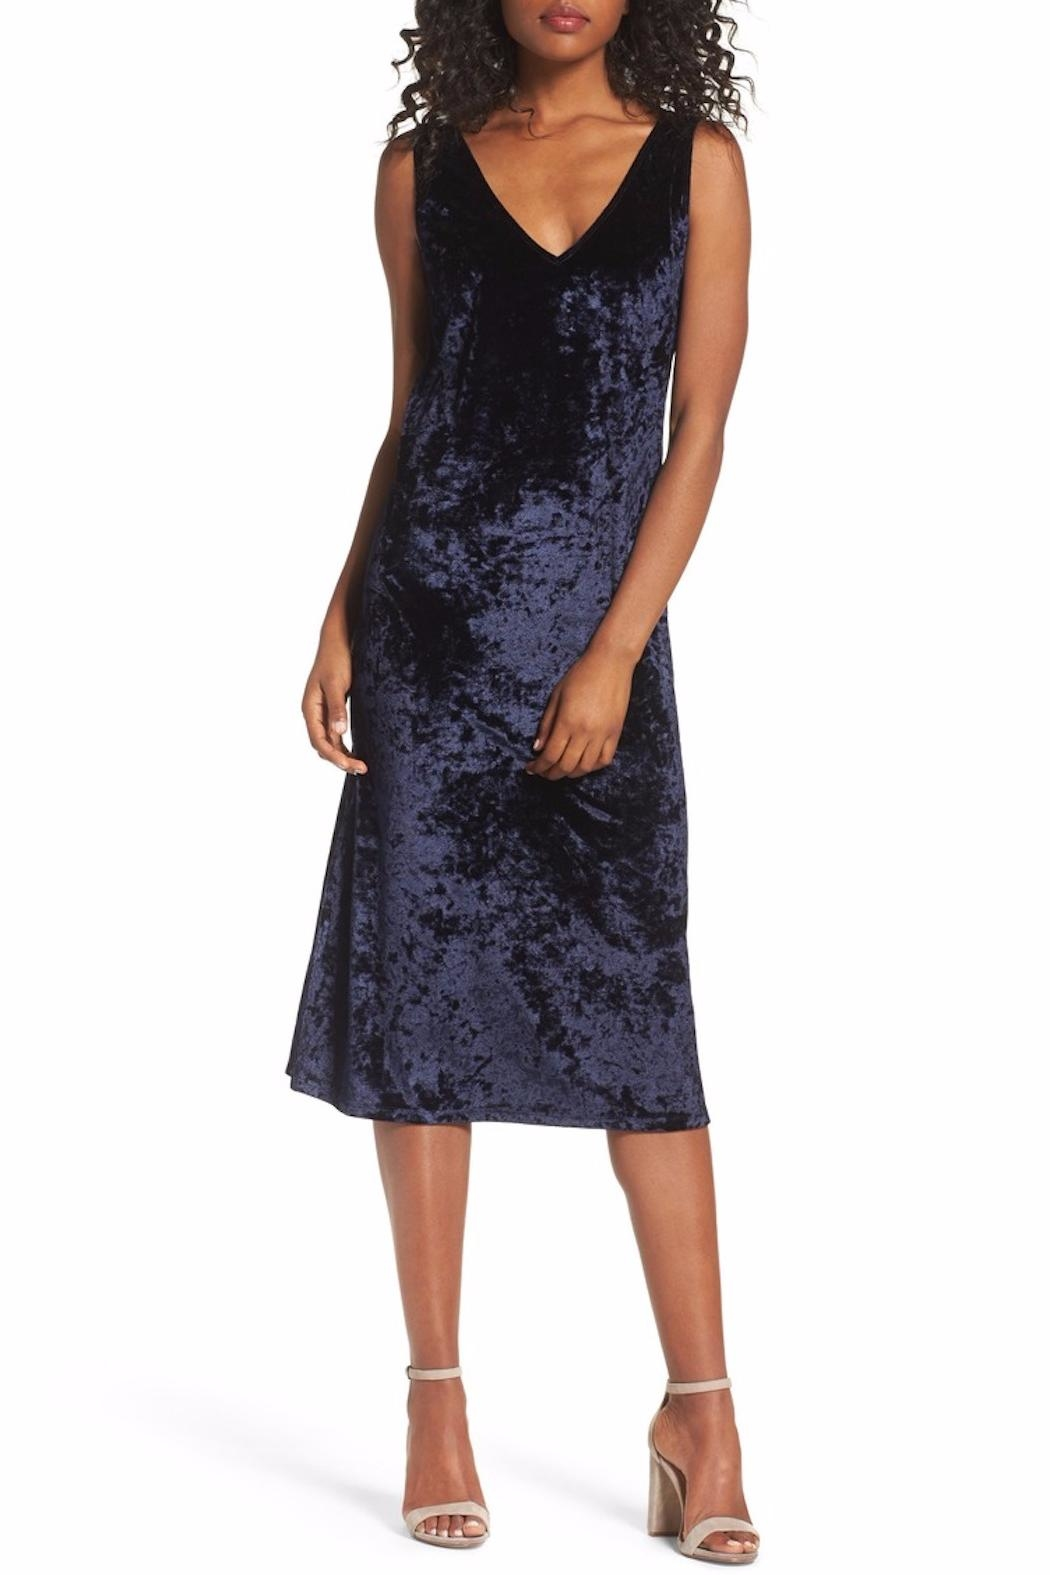 BB Dakota Blue Velvet Midi Dress - Main Image